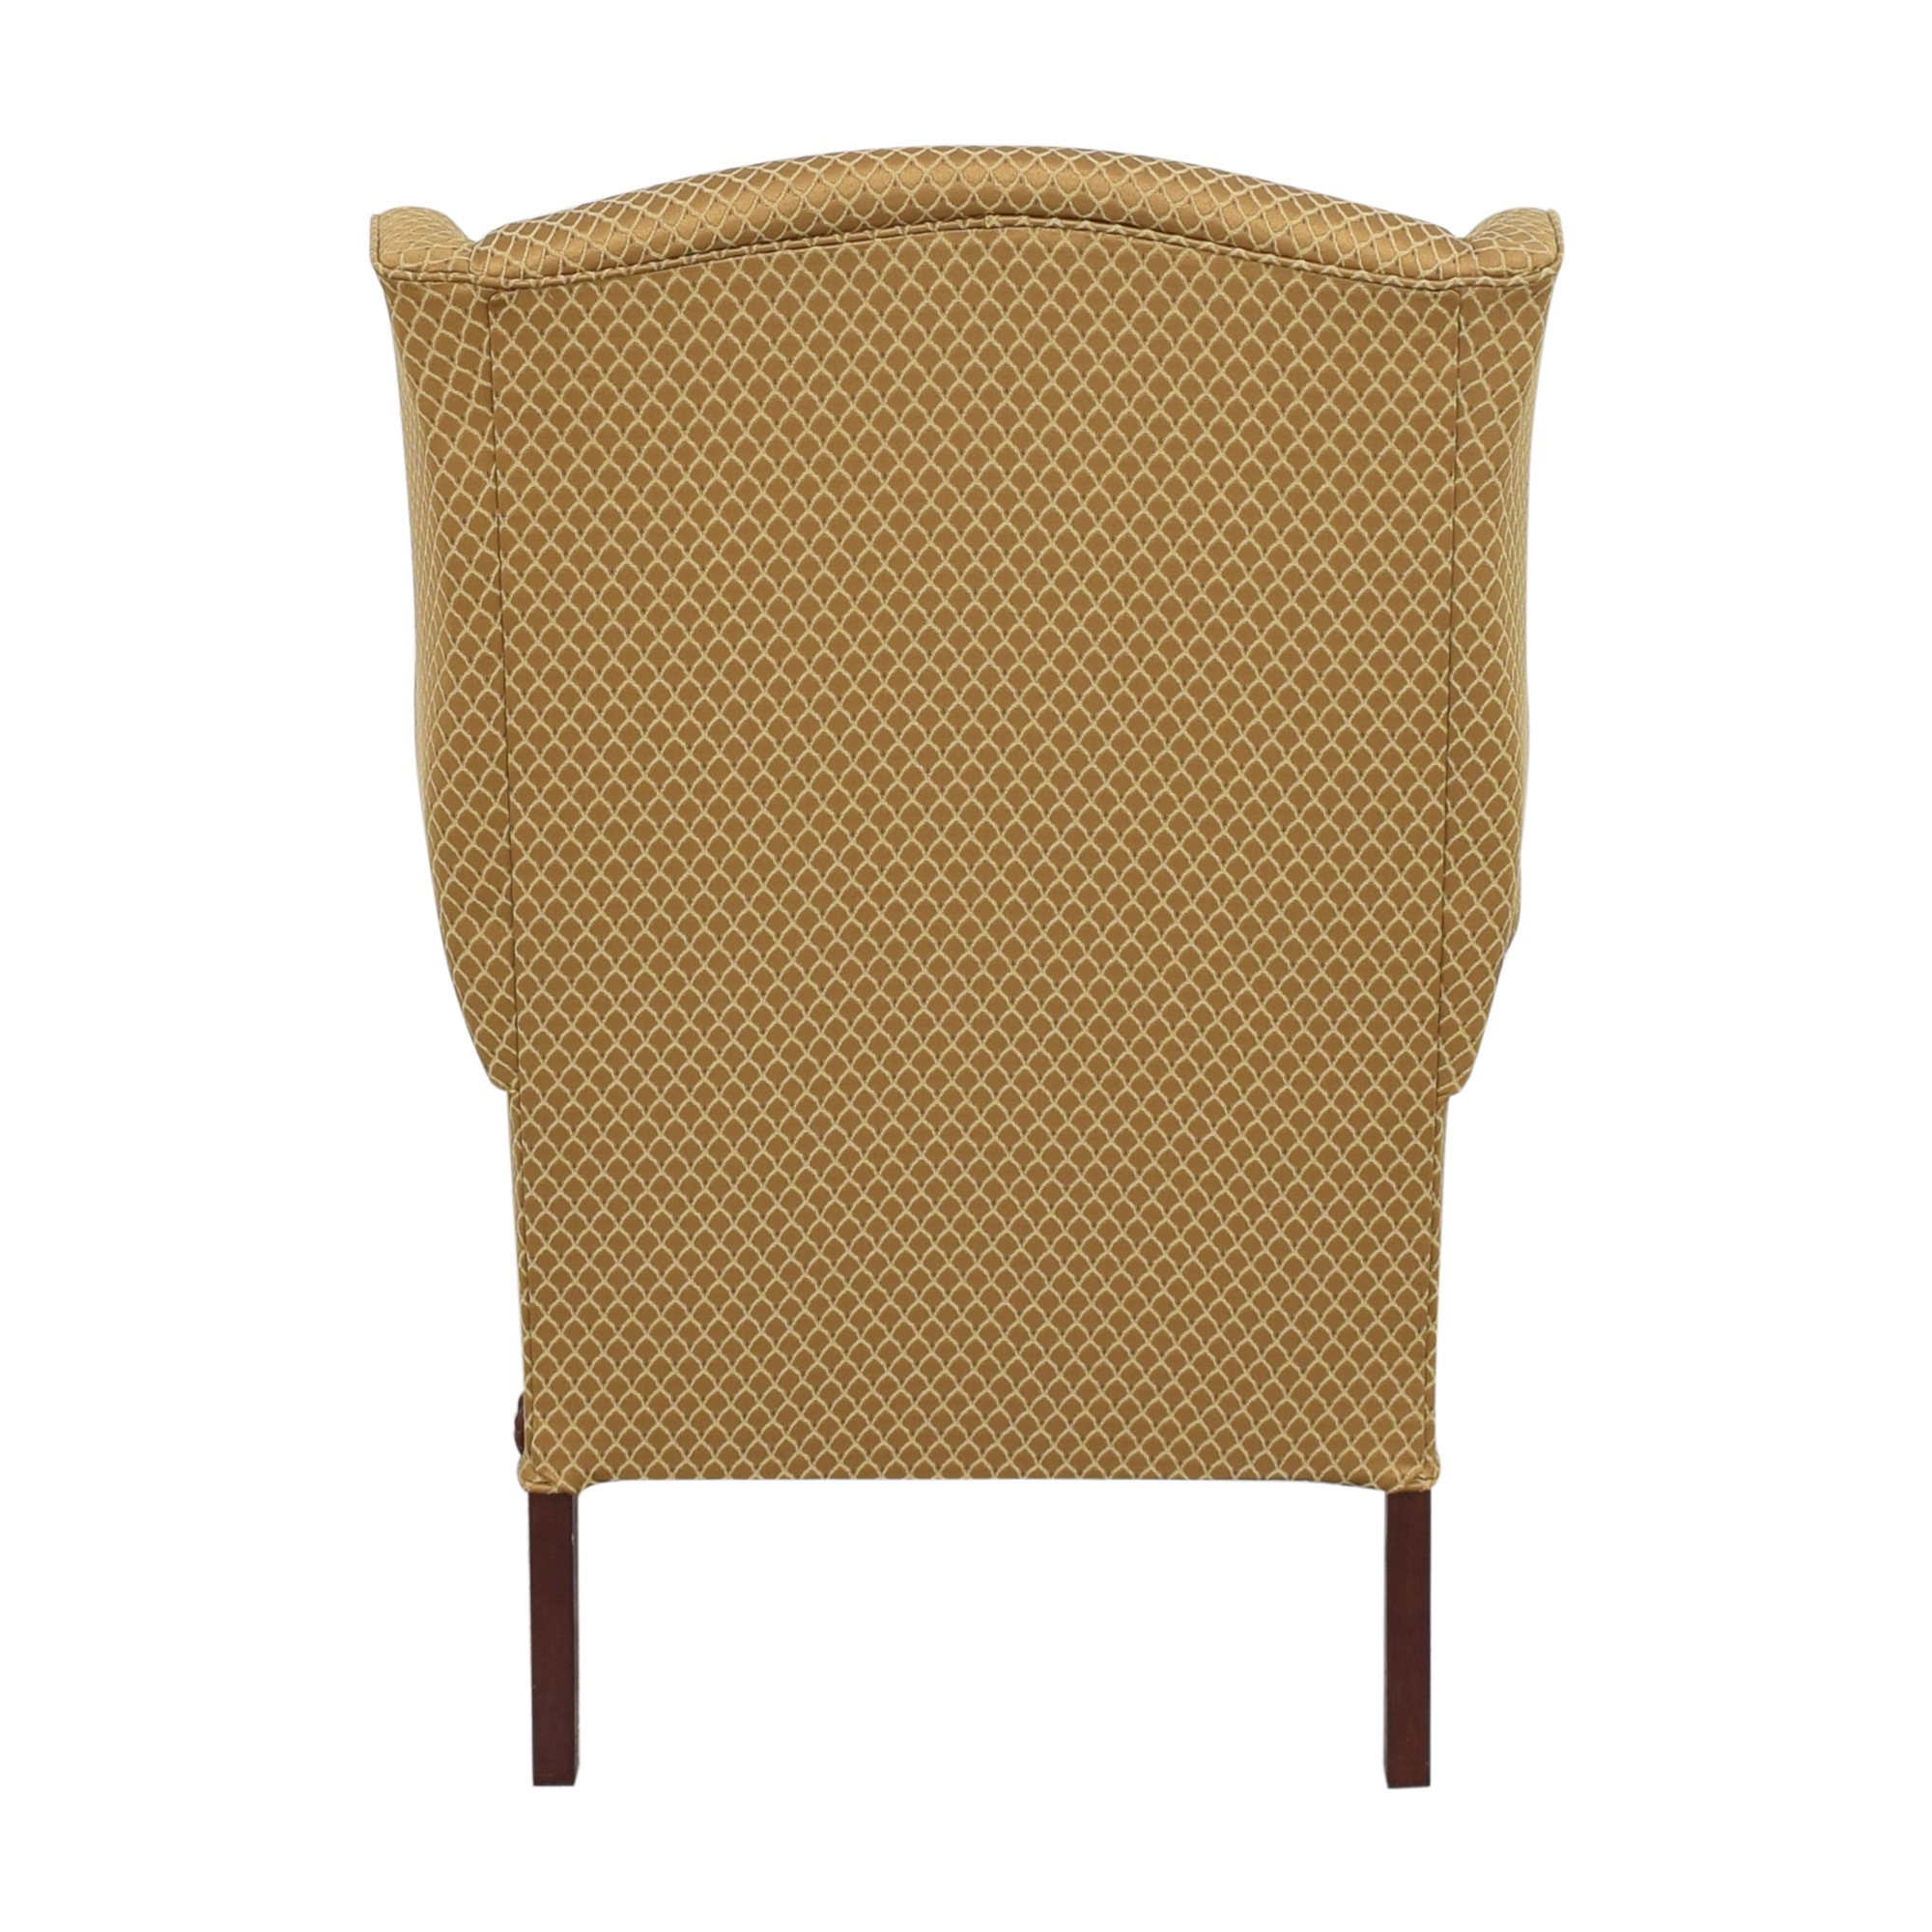 Best Chairs Best Chairs Wingback Chair on sale